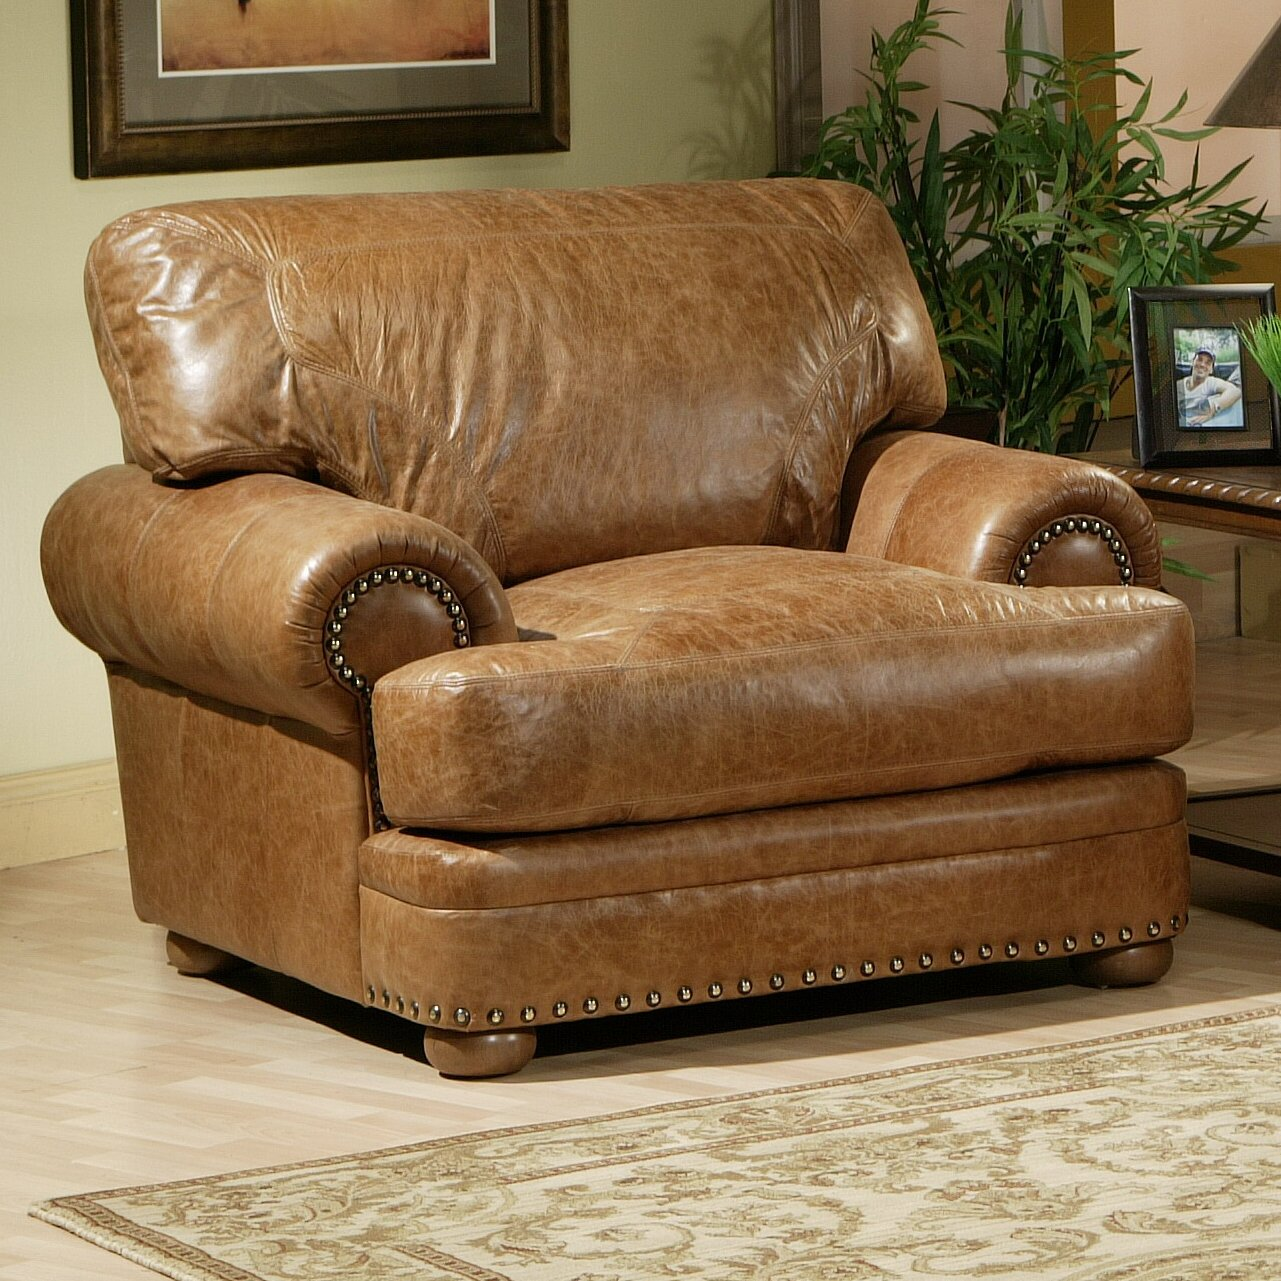 Omnia leather houston leather living room set reviews for I furniture houston